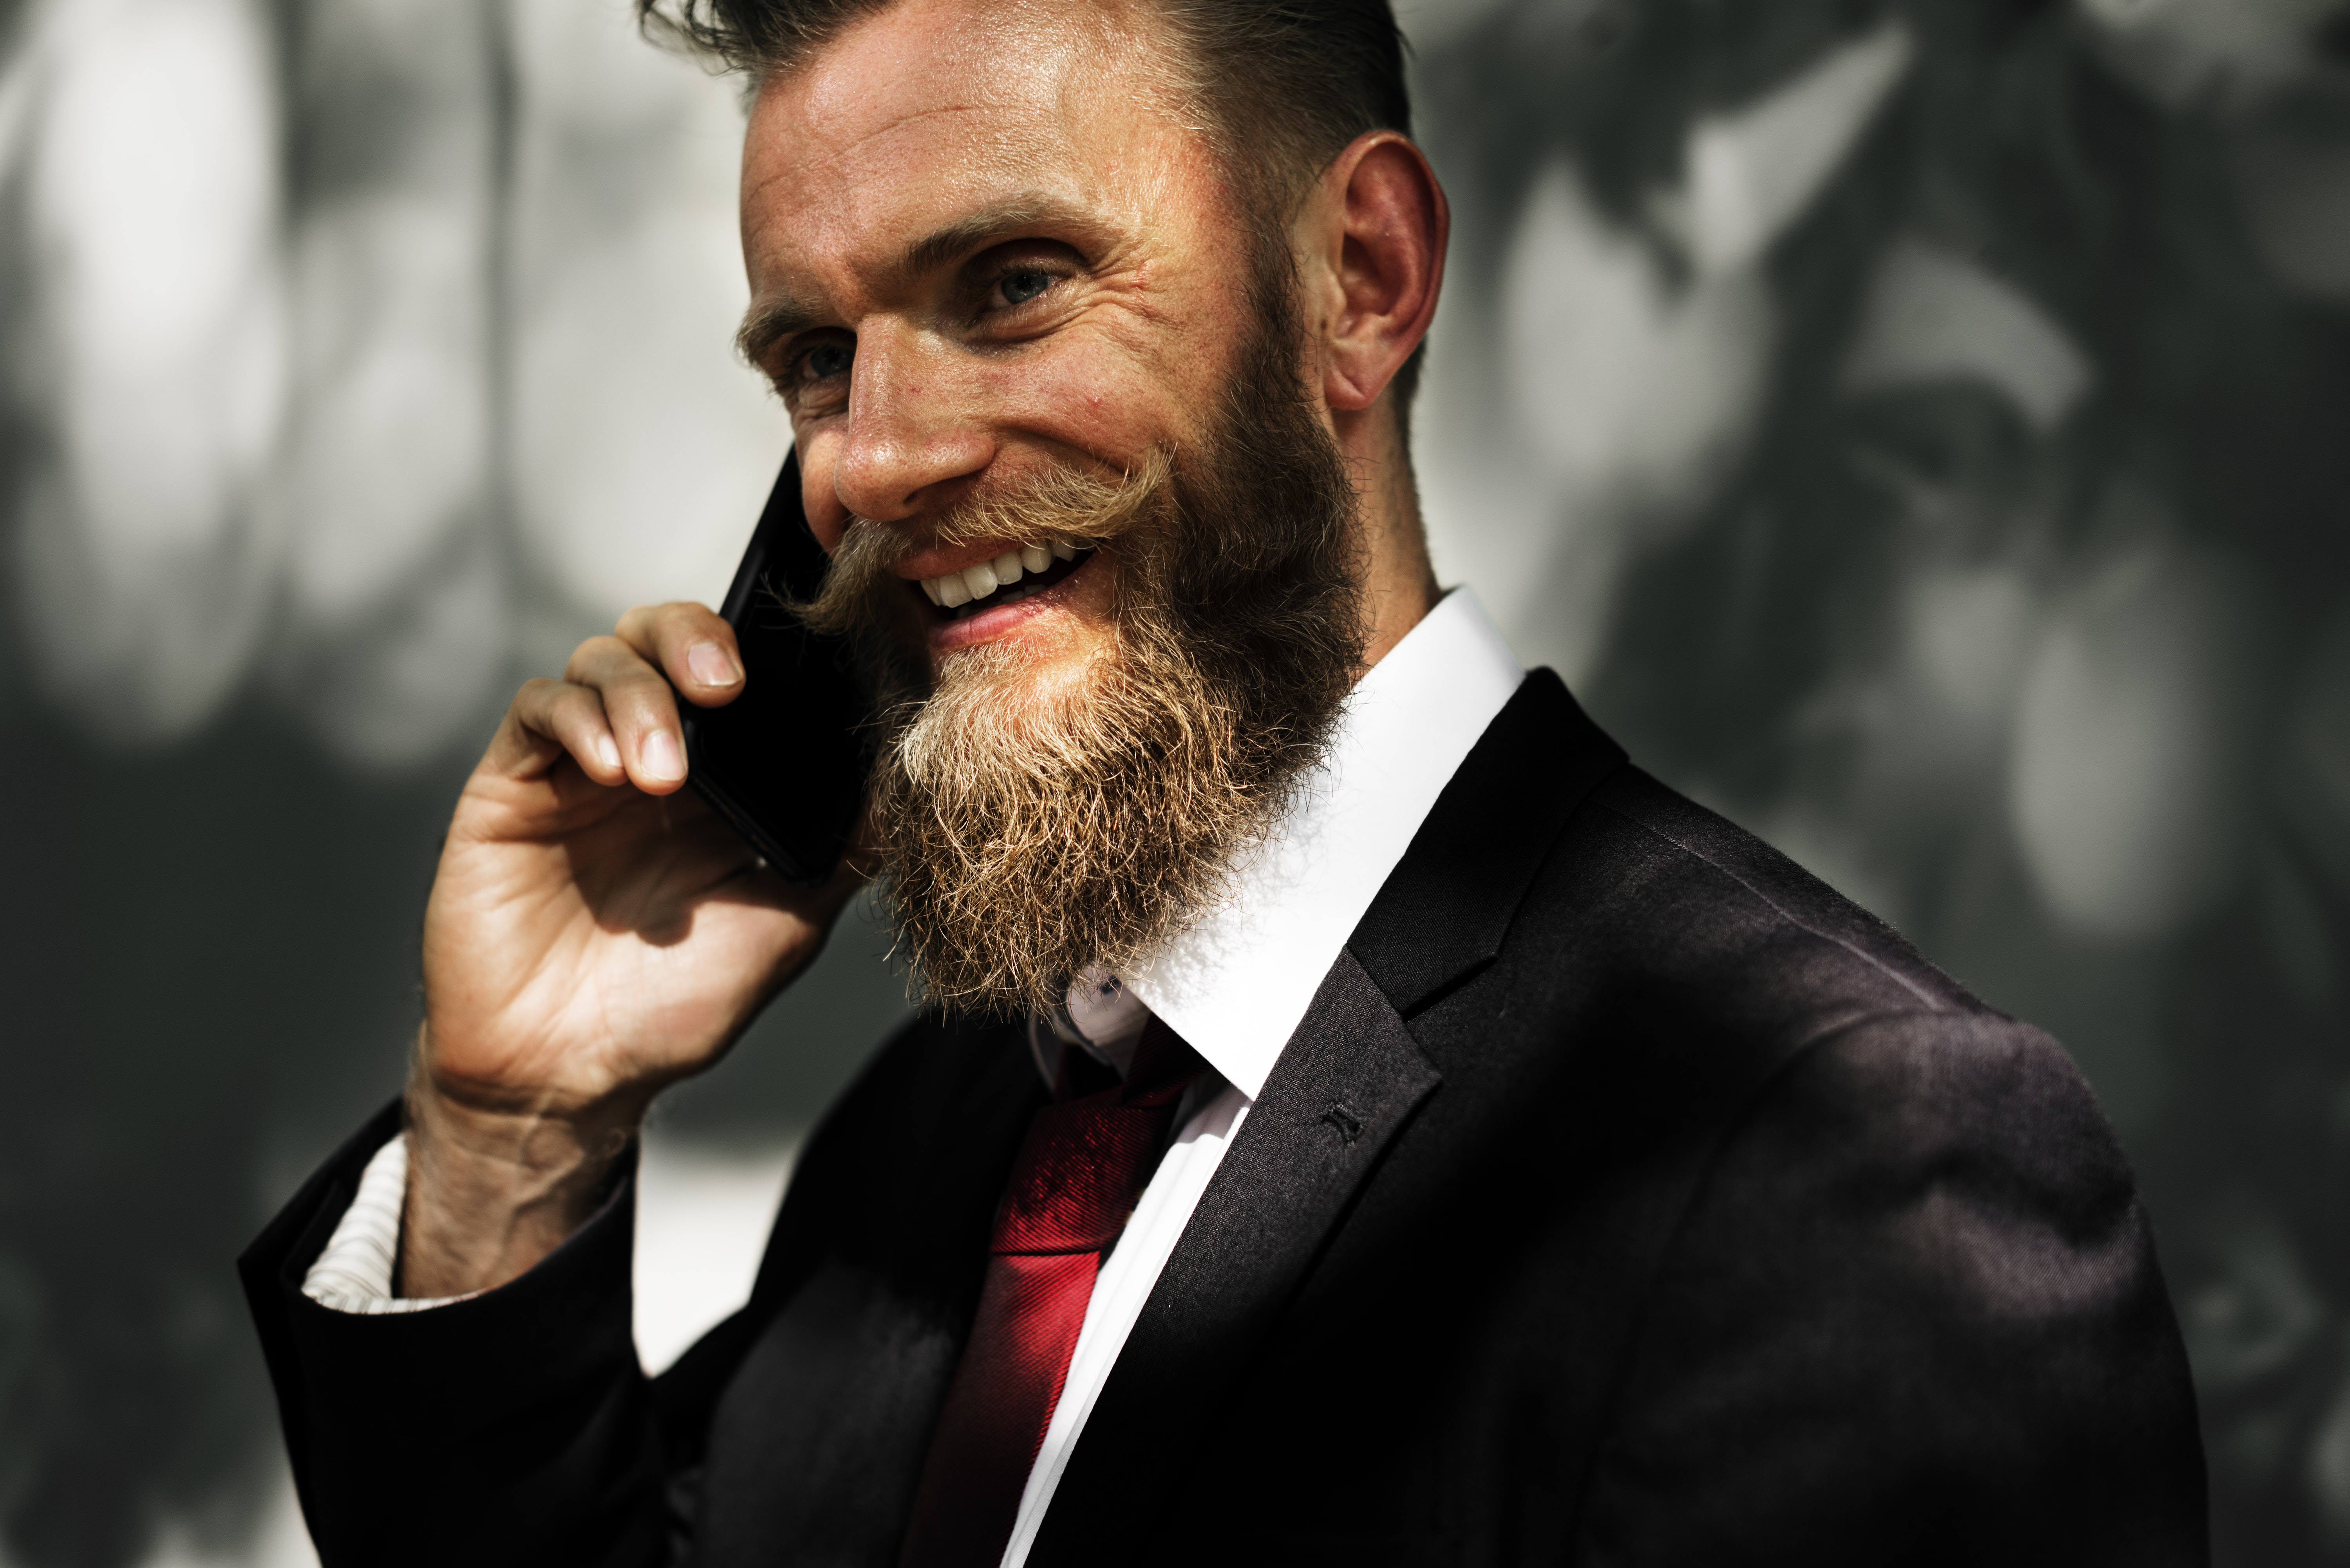 A bearded man in a black suit smiling while talking on a phone